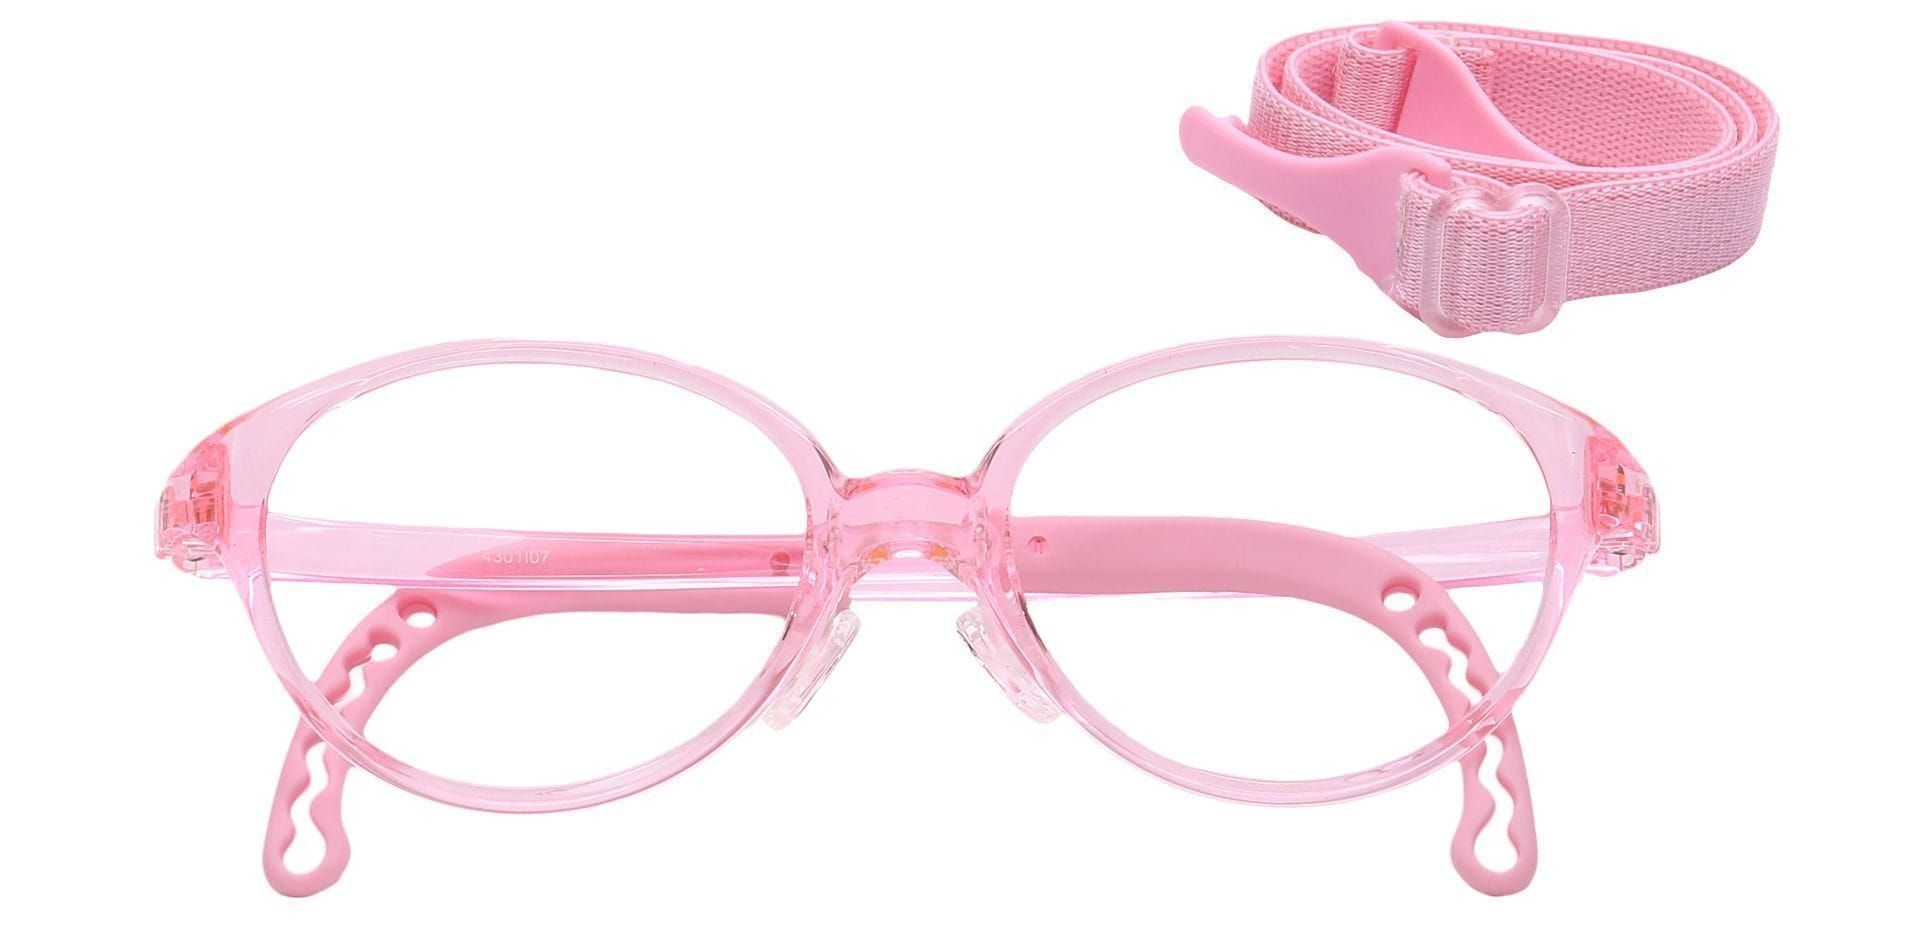 Zany Oval Prescription Glasses - Pink